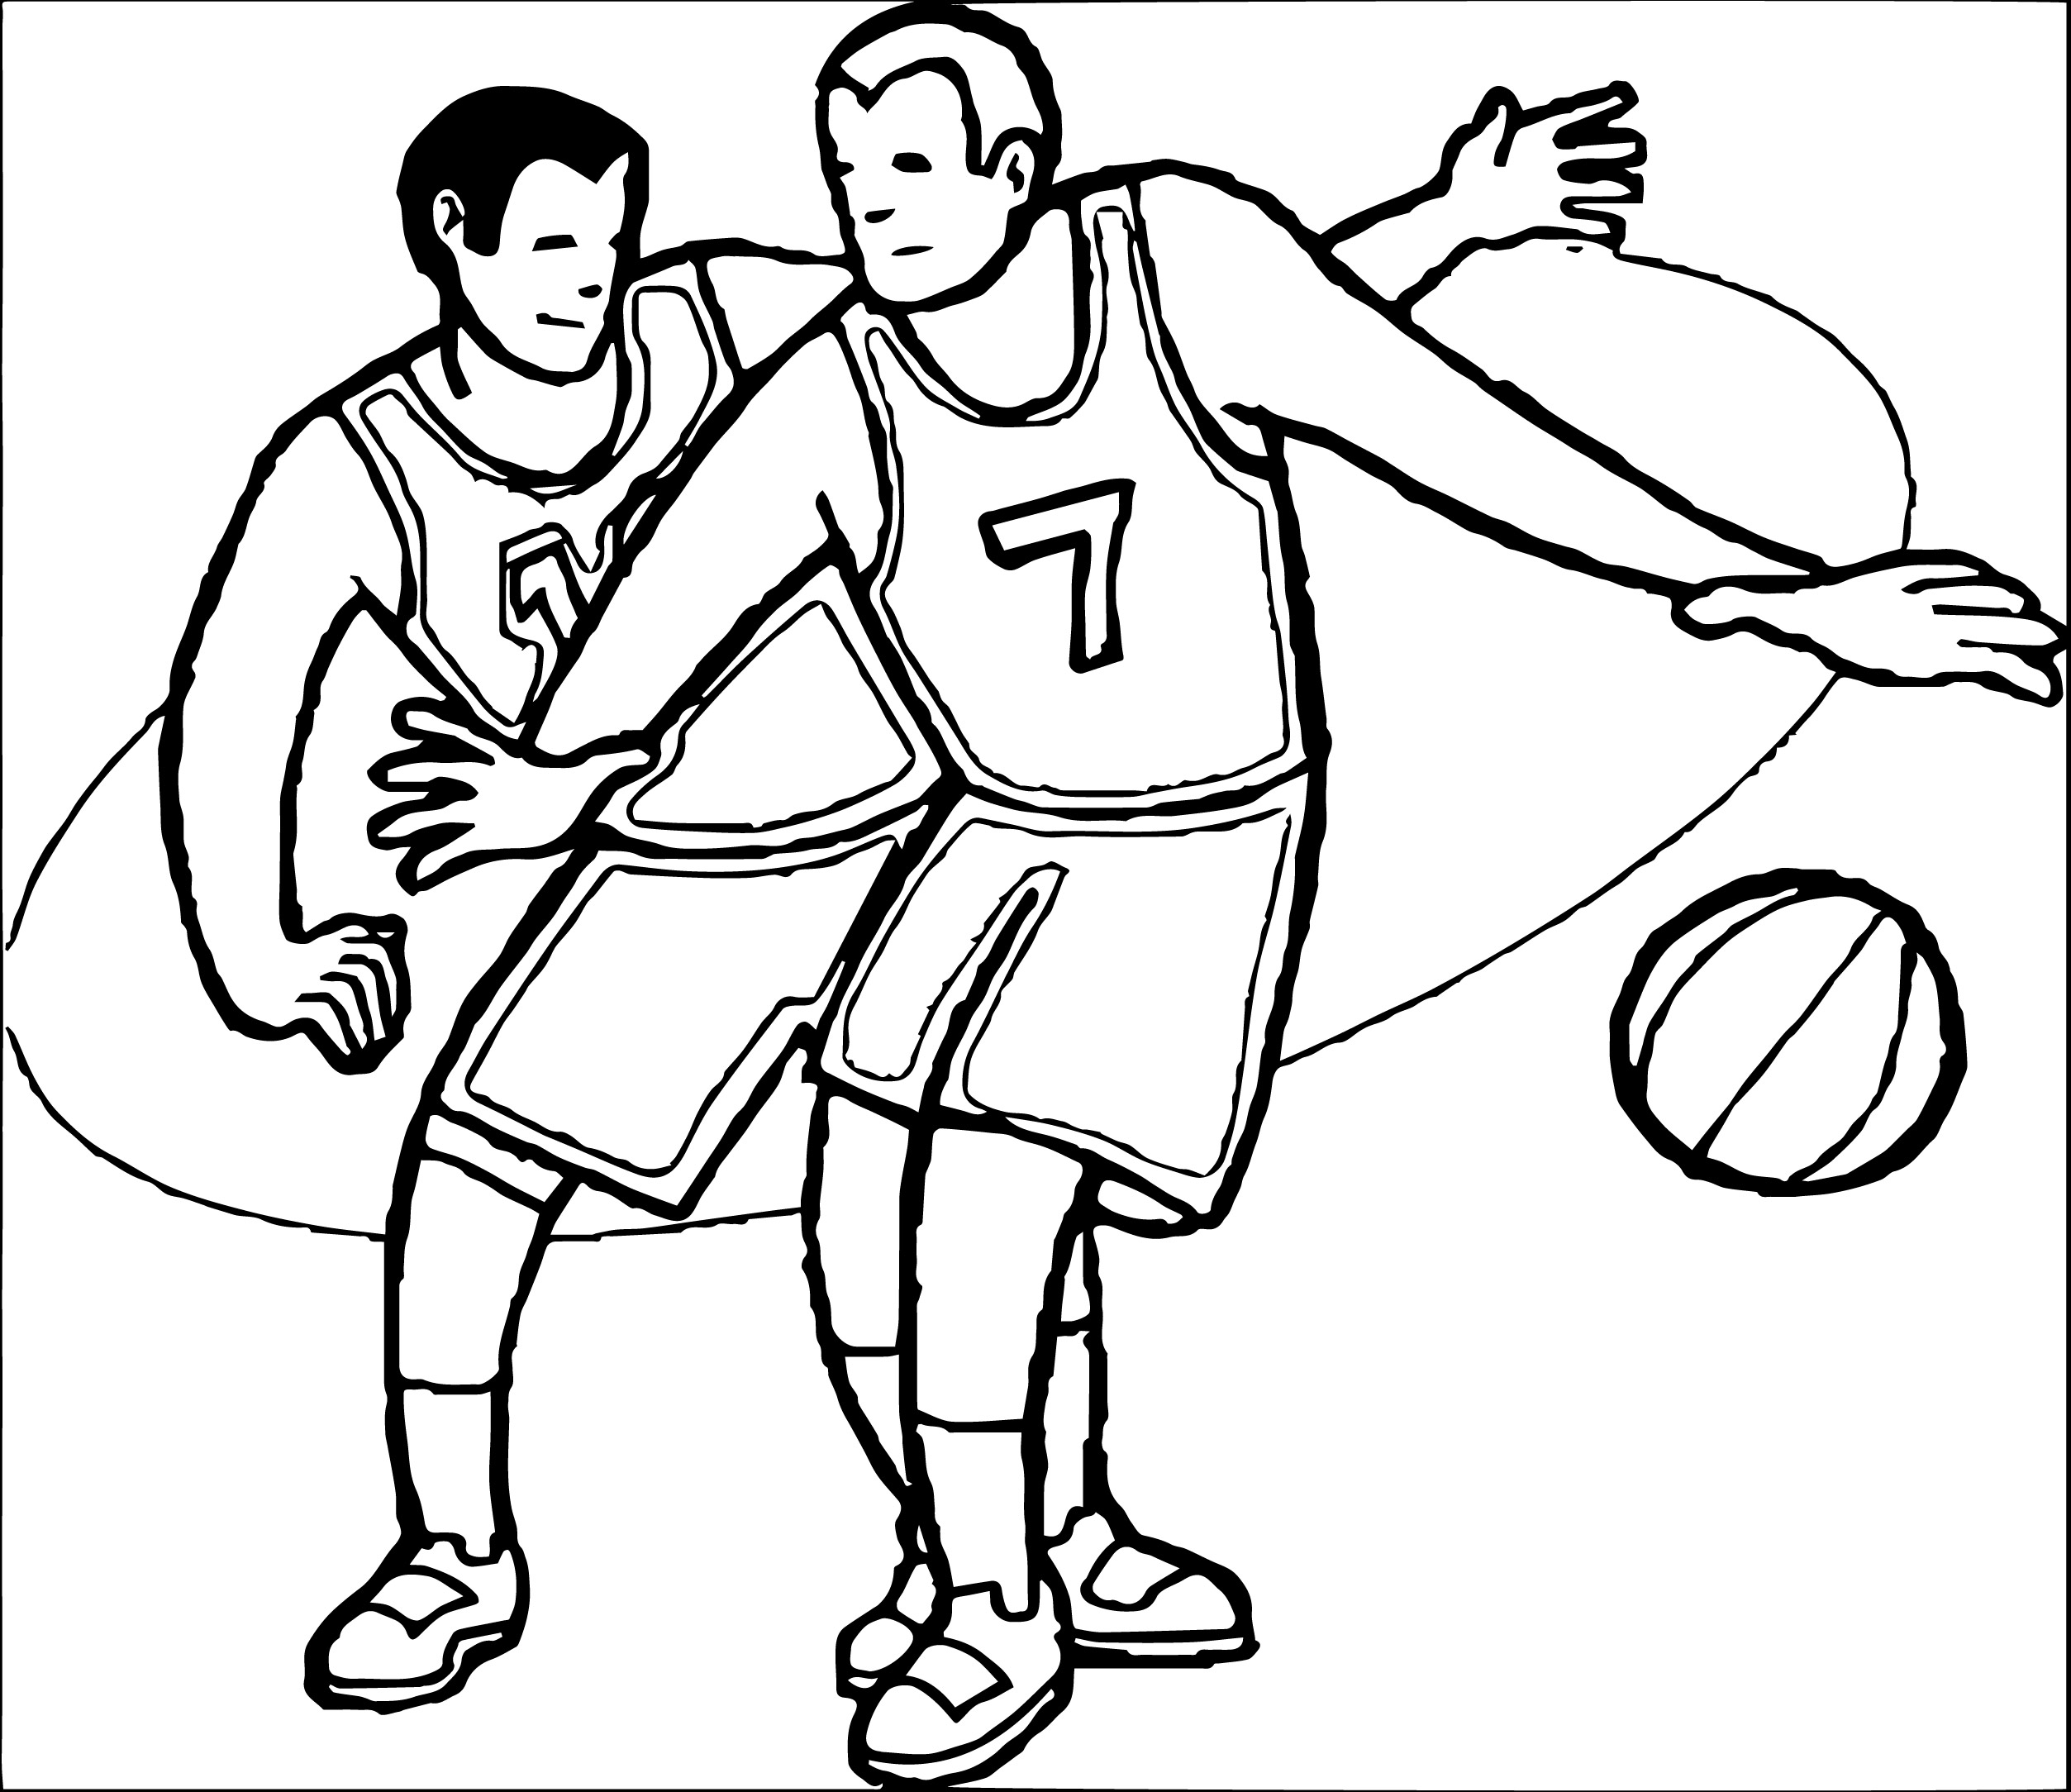 2506x2168 Basketball Player Clipart Black And White